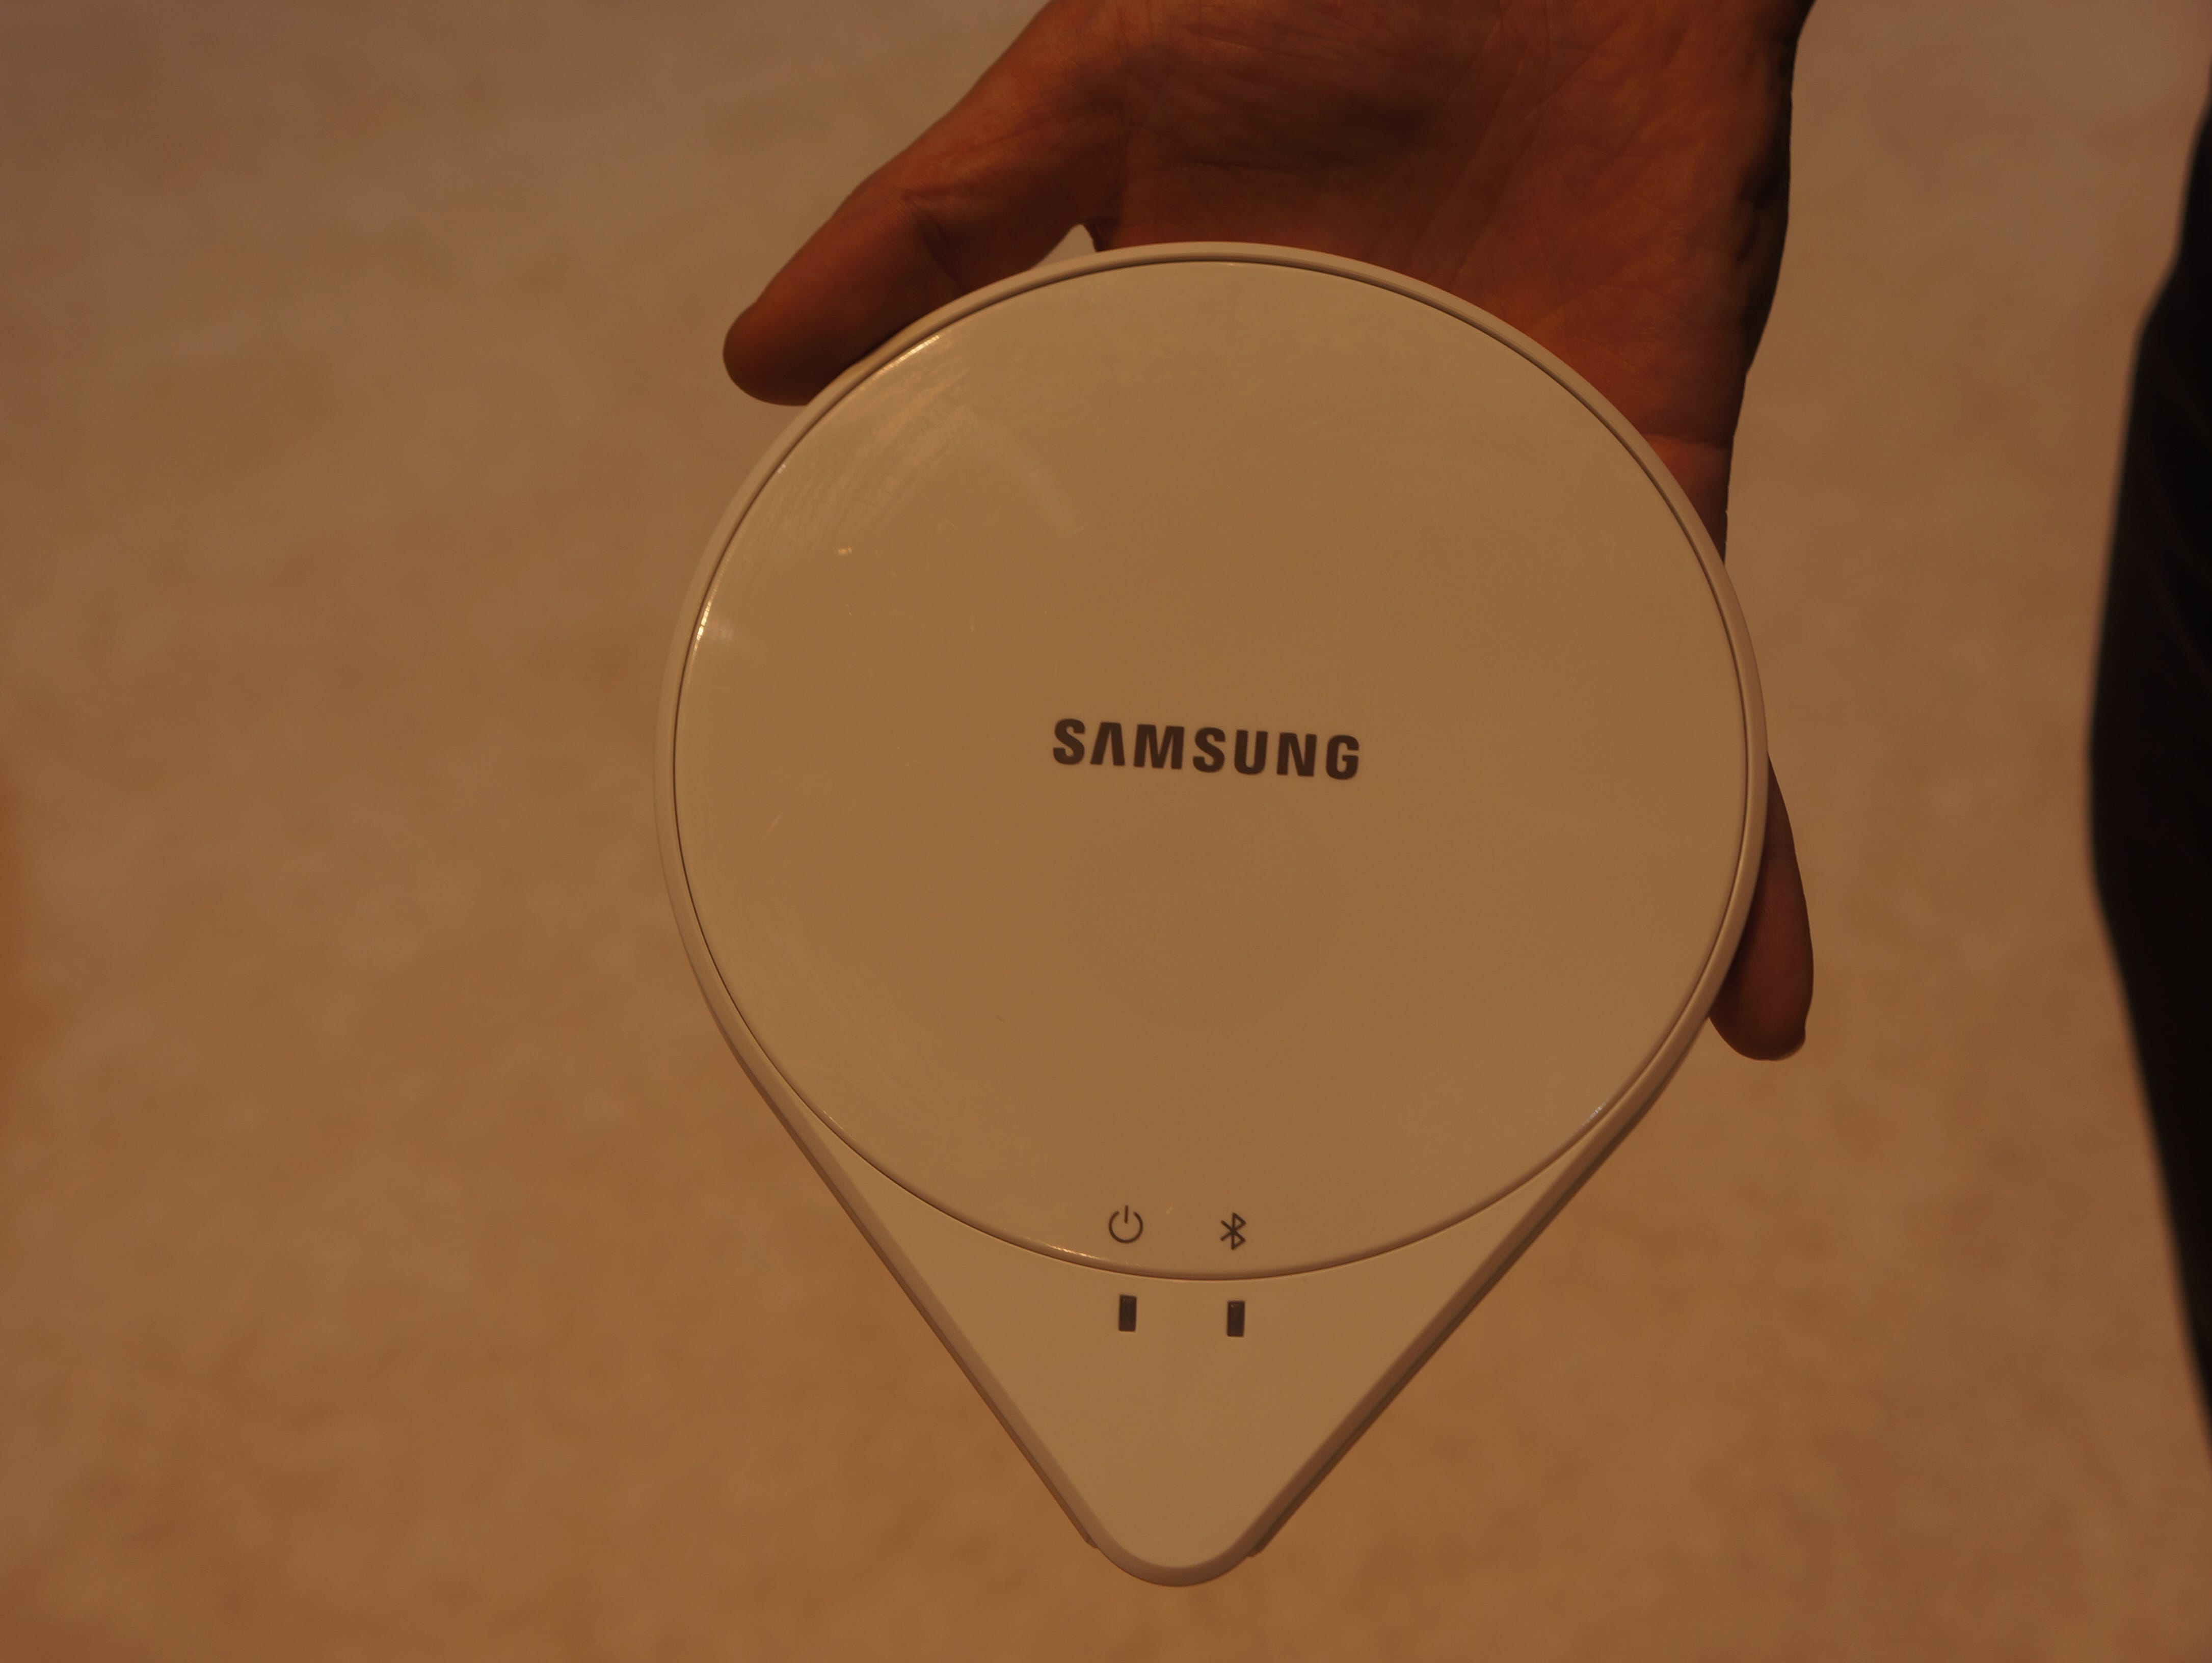 Samsung SleepSense sensor goes under the mattress.